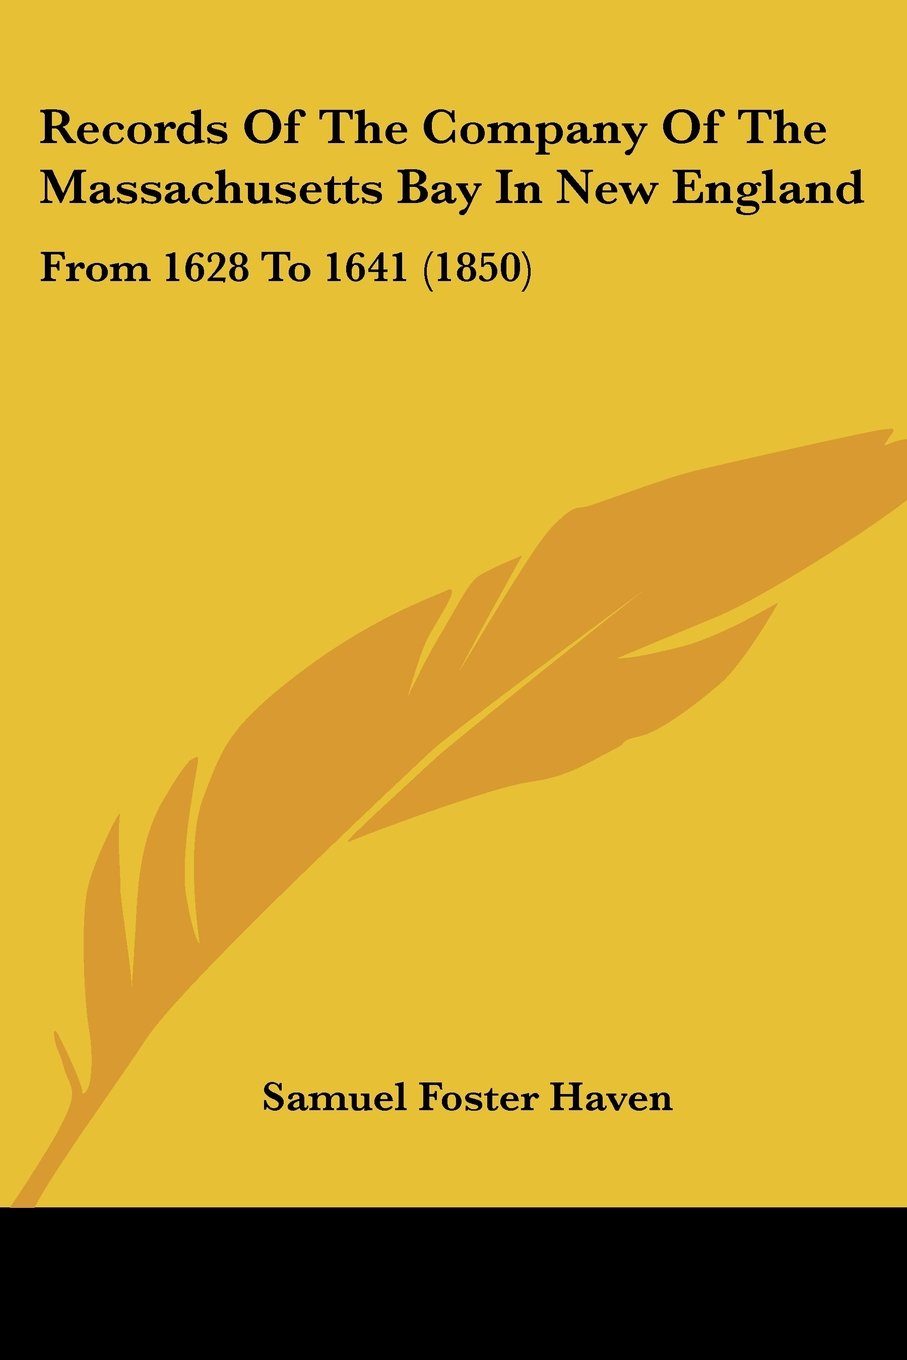 Records Of The Company Of The Massachusetts Bay In New England: From 1628 To 1641 (1850) ebook